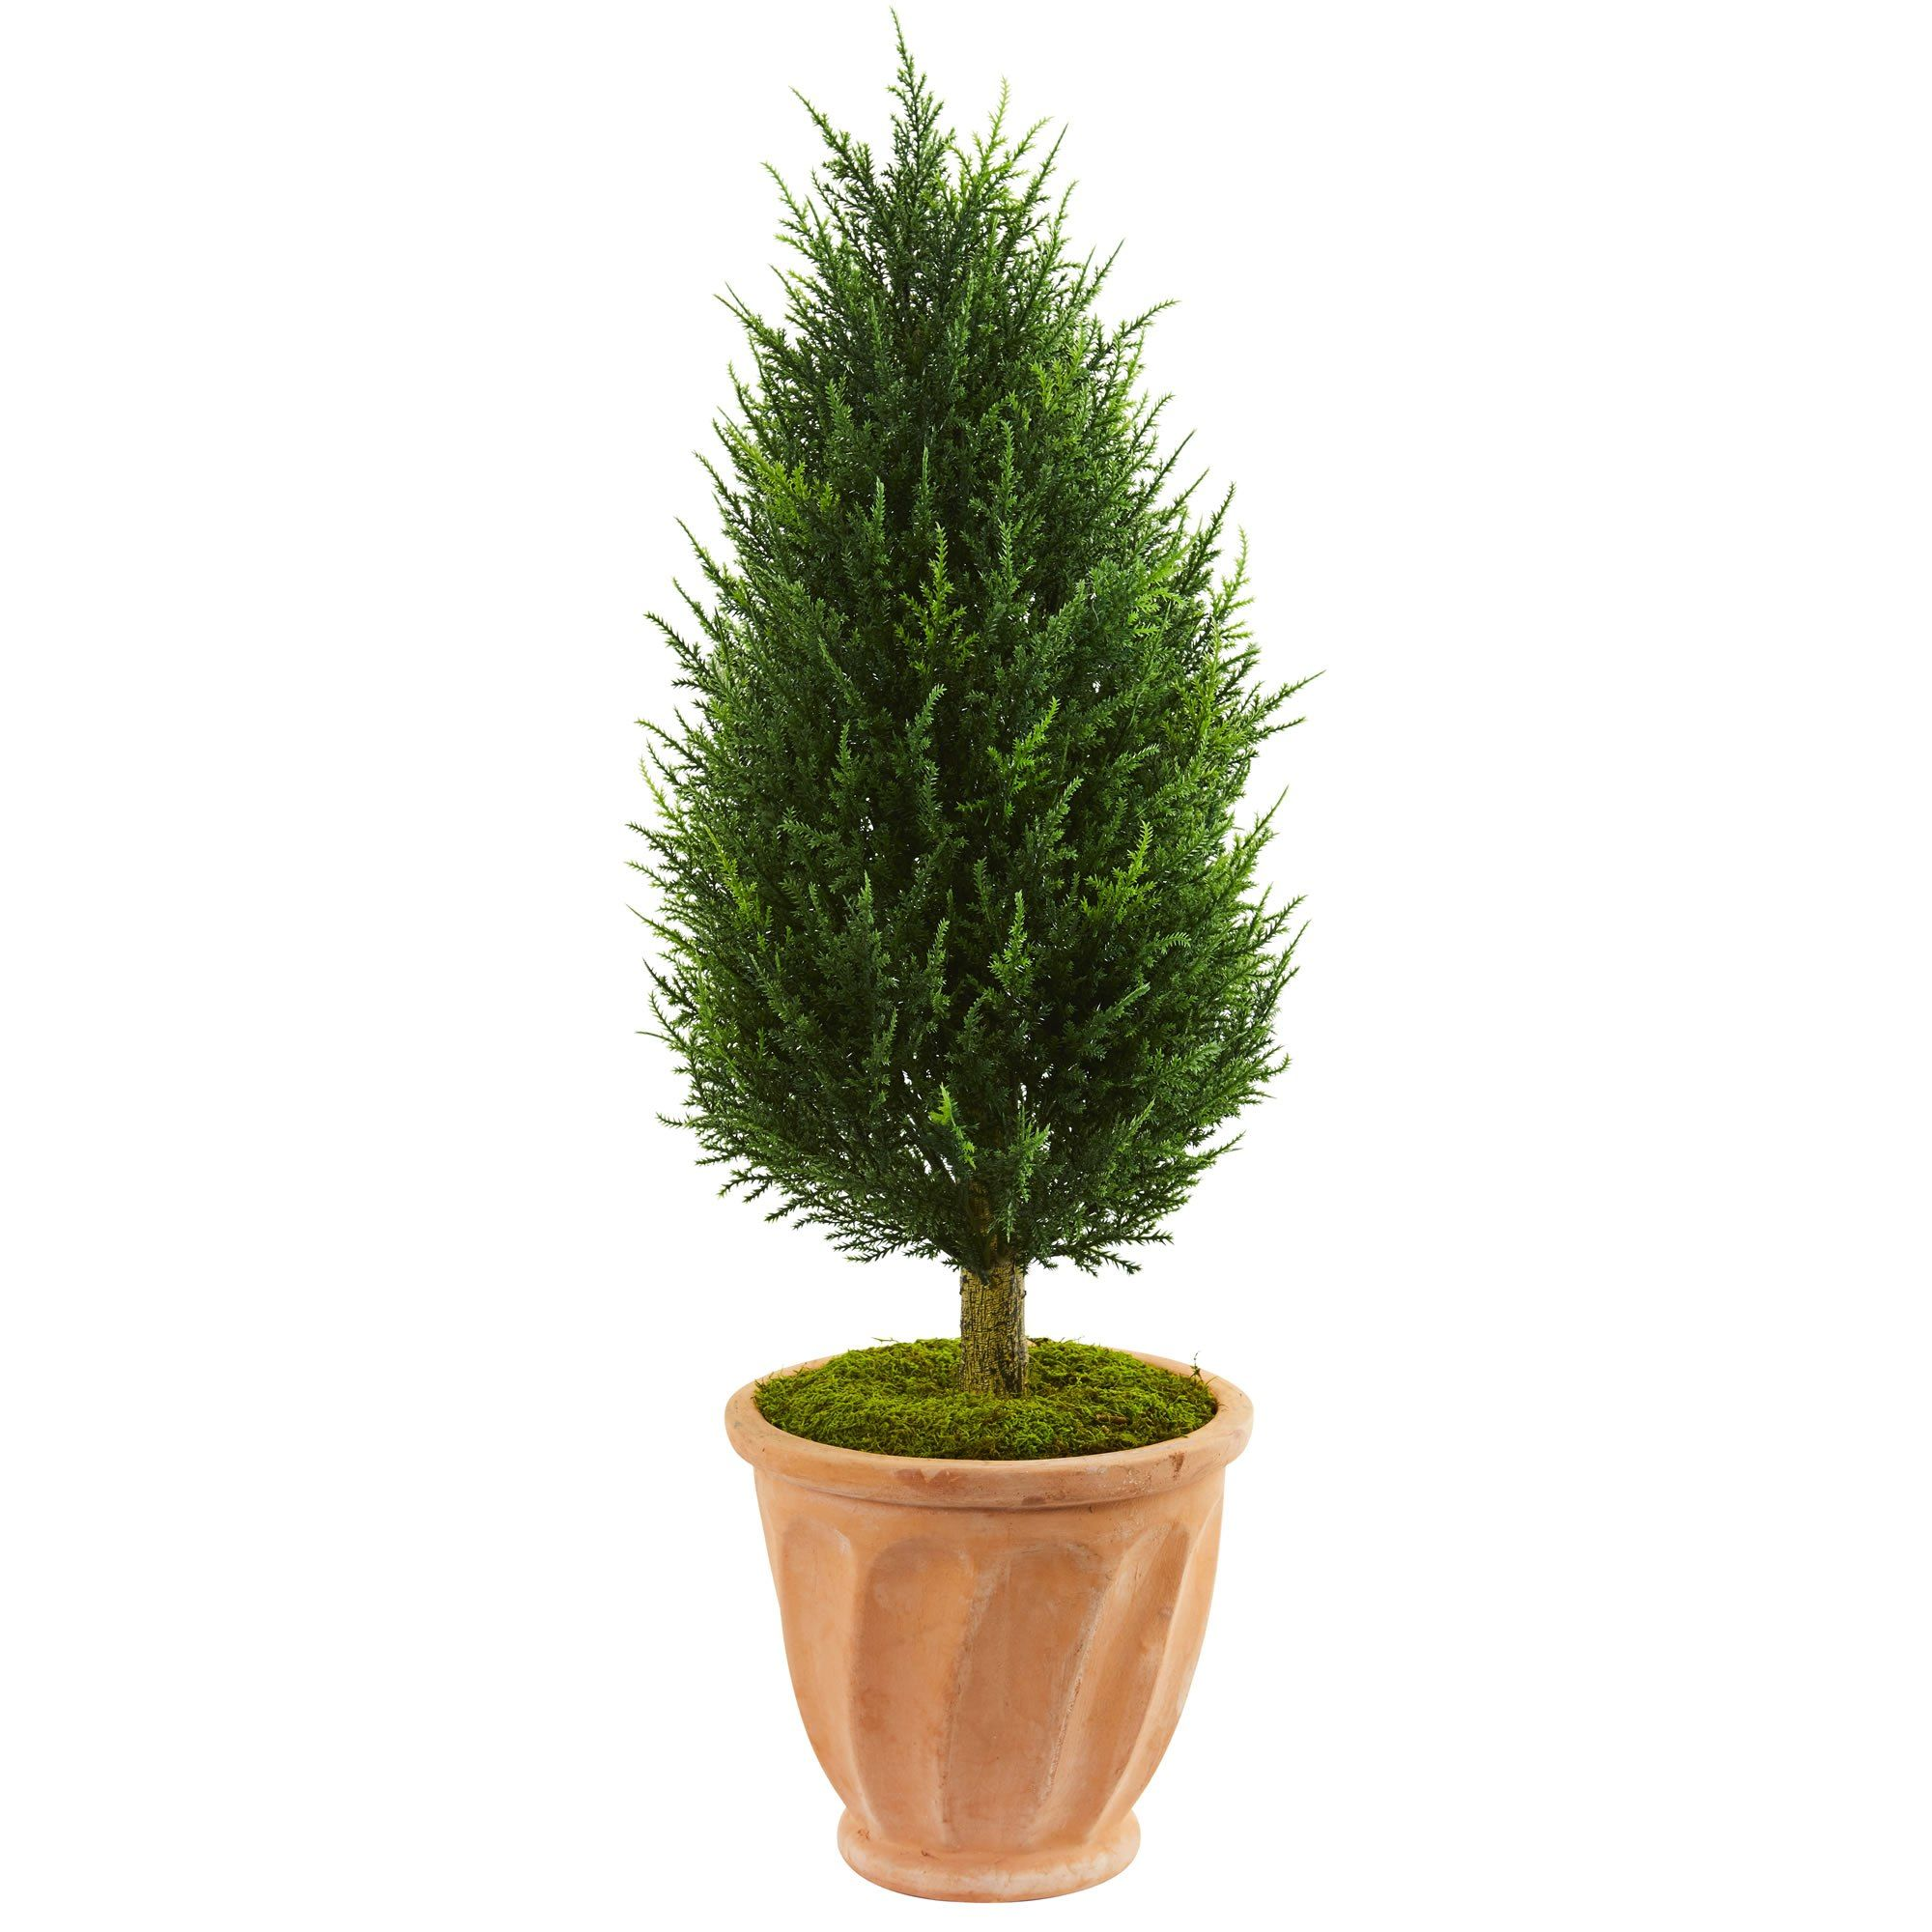 Ud cypress artificial tree in terracotta planter uv resistant